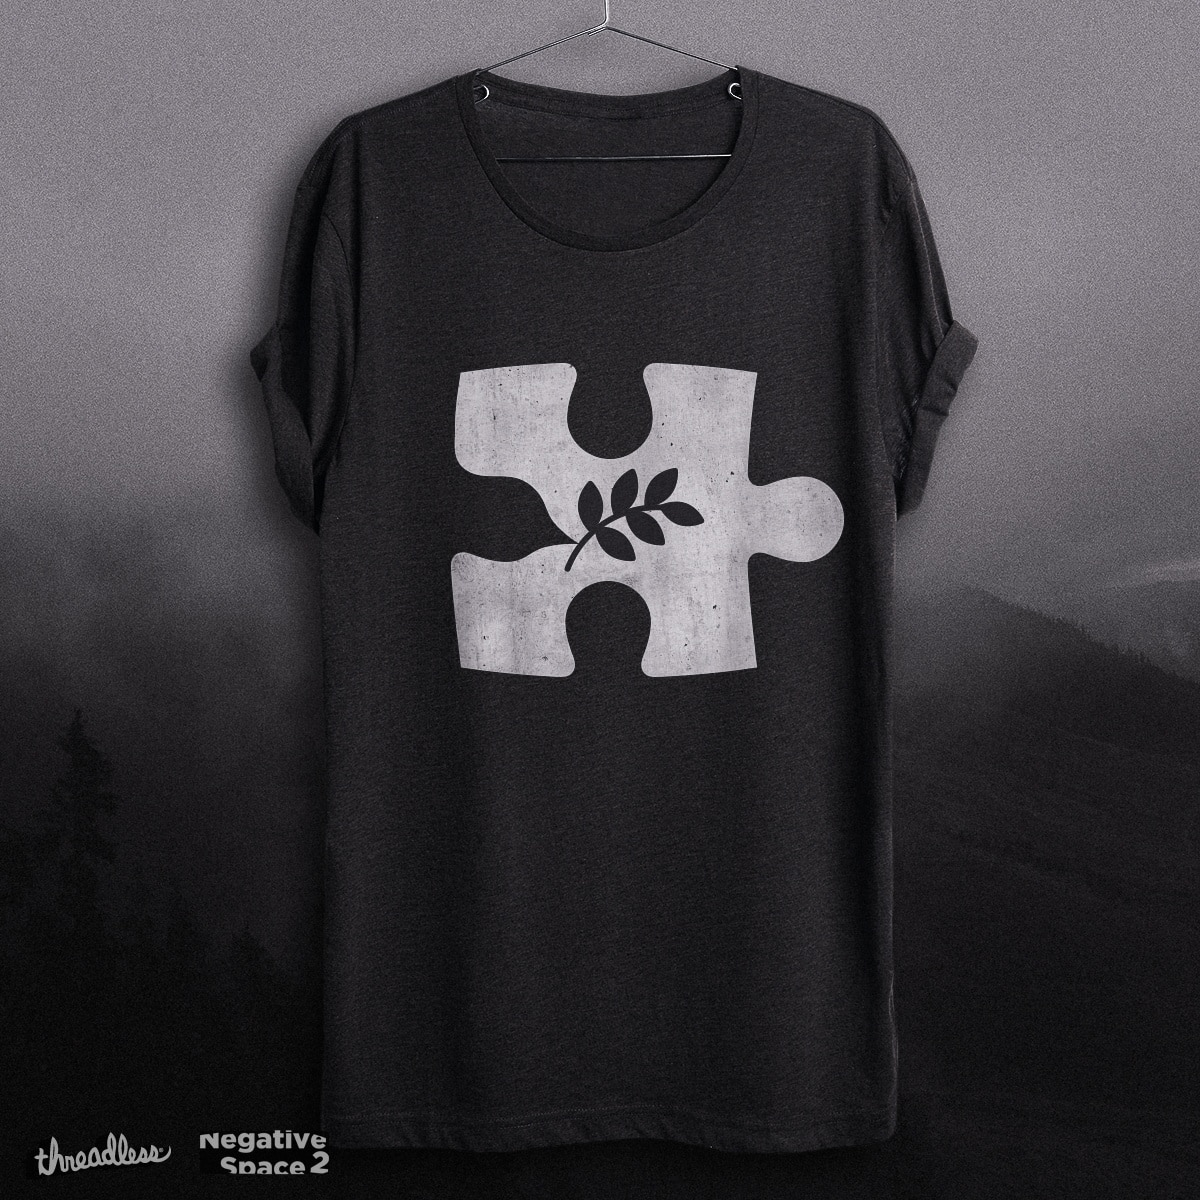 The Missing Peace by aparaat on Threadless